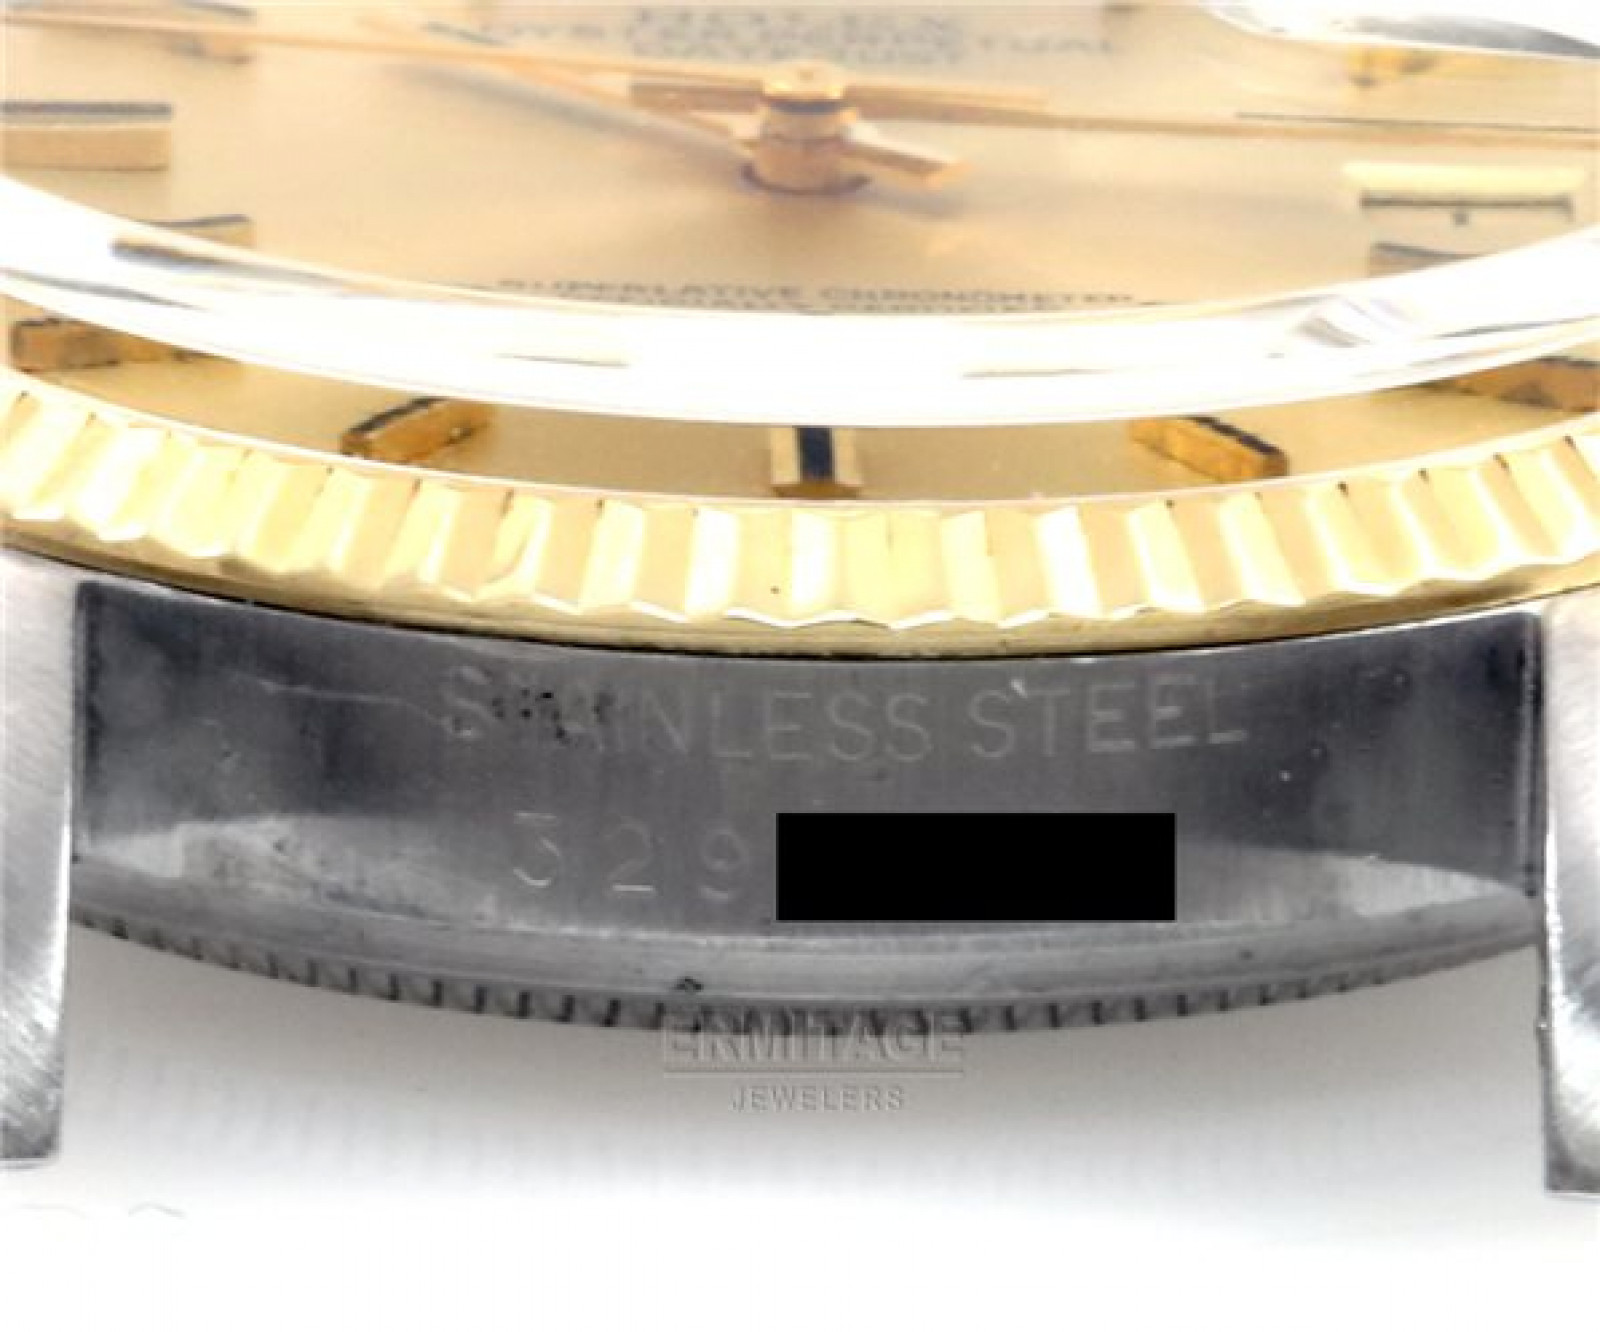 Vintage Rare Rolex Datejust 1601 Gold Year 1971